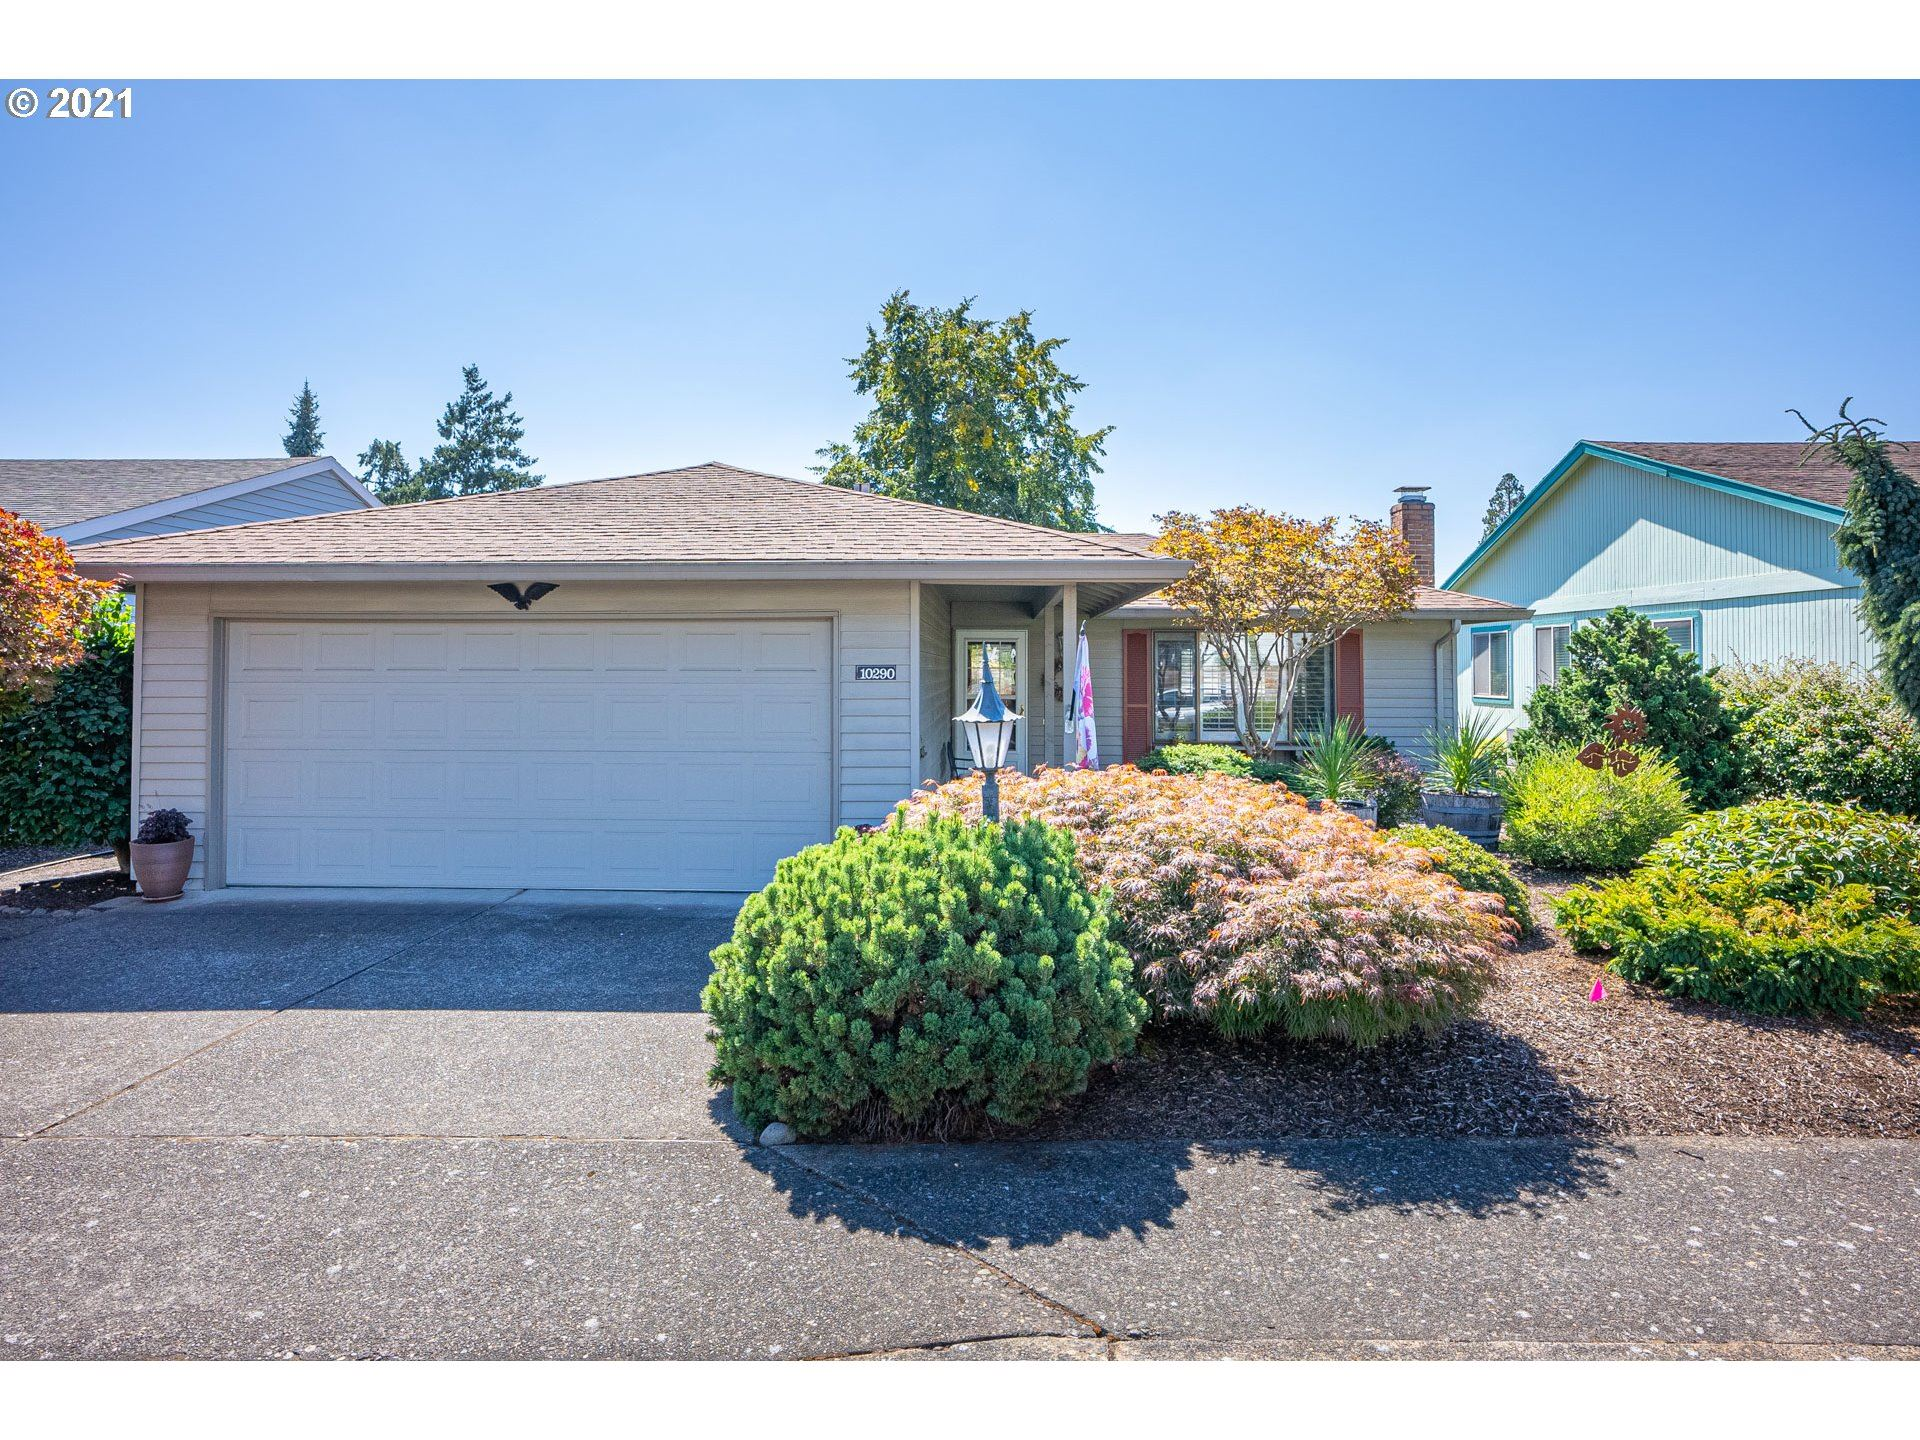 10290 SW HIGHLAND DR, Tigard, OR 97224 - MLS#: 21132418